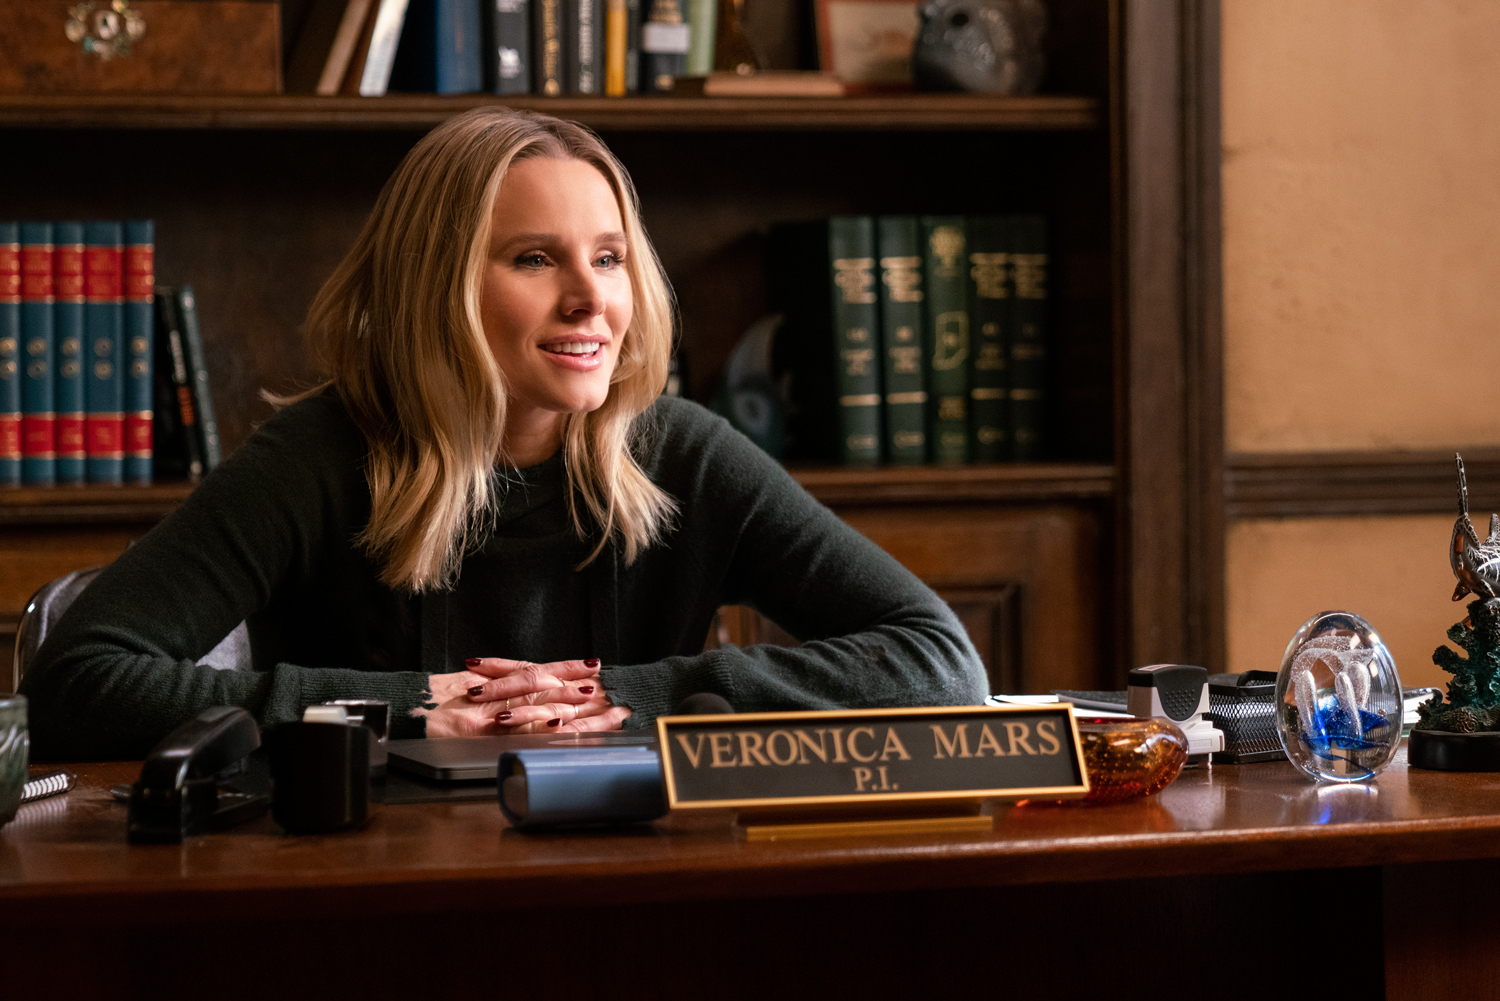 Veronica Mars Gets Called Back to Neptune in Season 4 Trailer